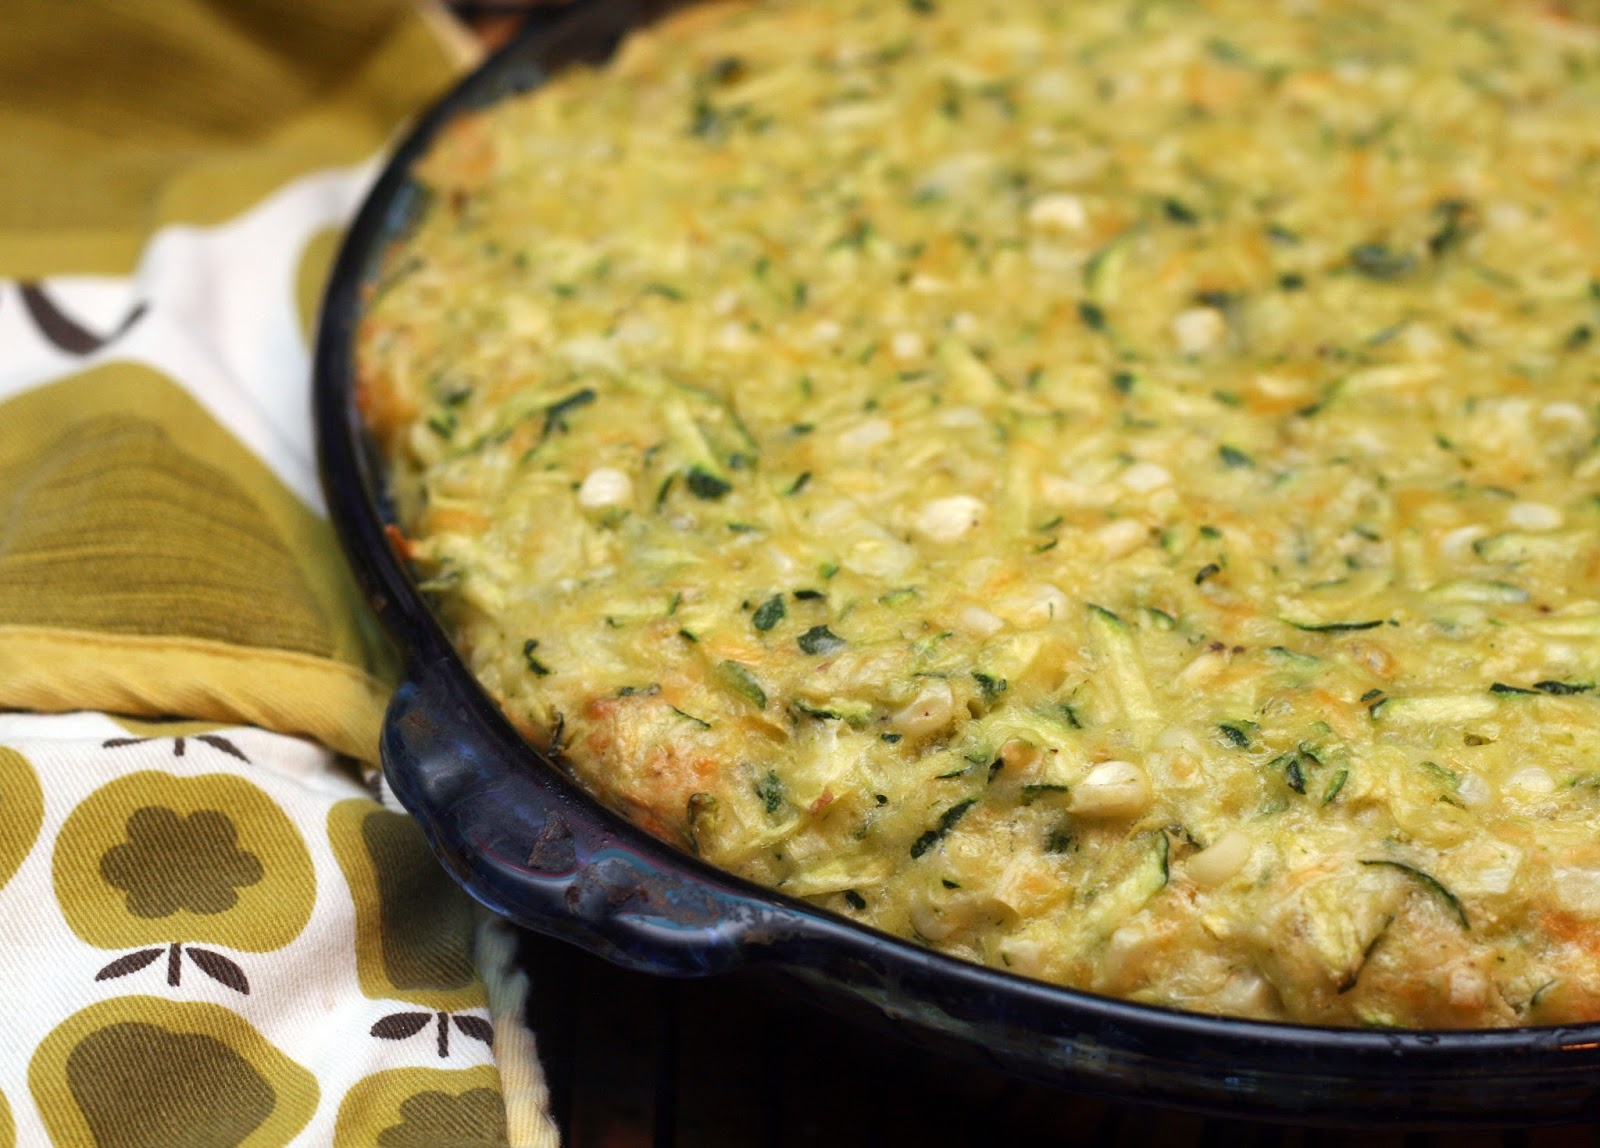 Recipes by Rachel Rappaport: Old-Fashioned Zucchini Corn Pie